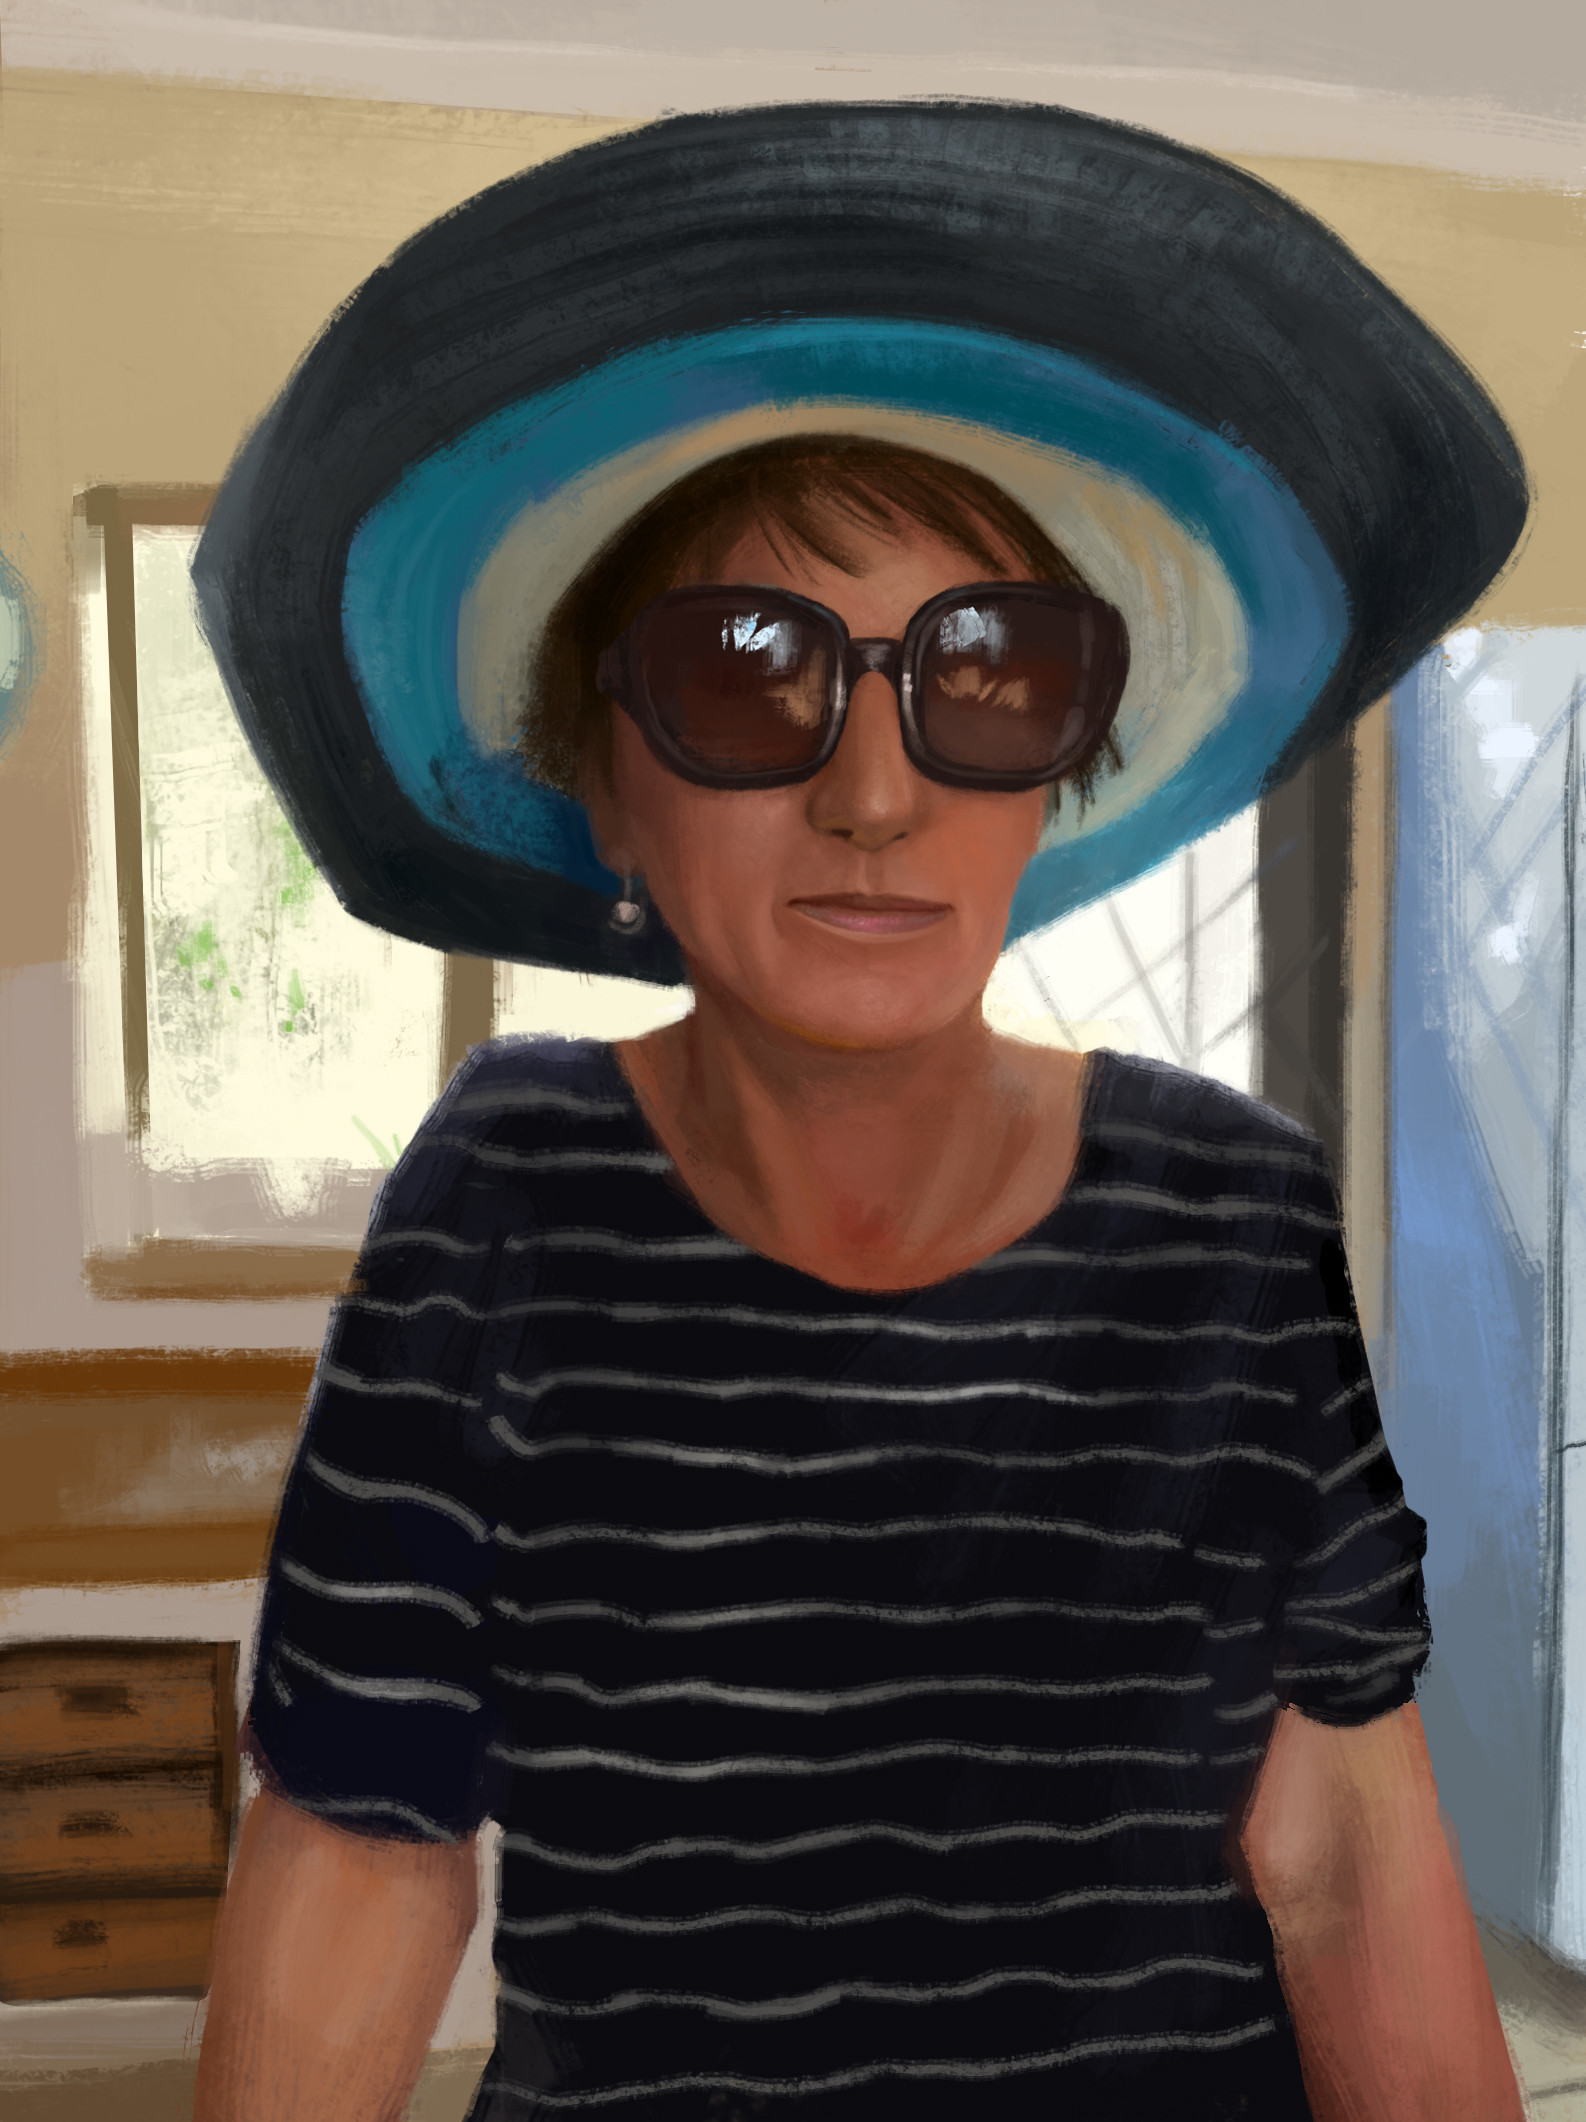 3 hour study of my mom.